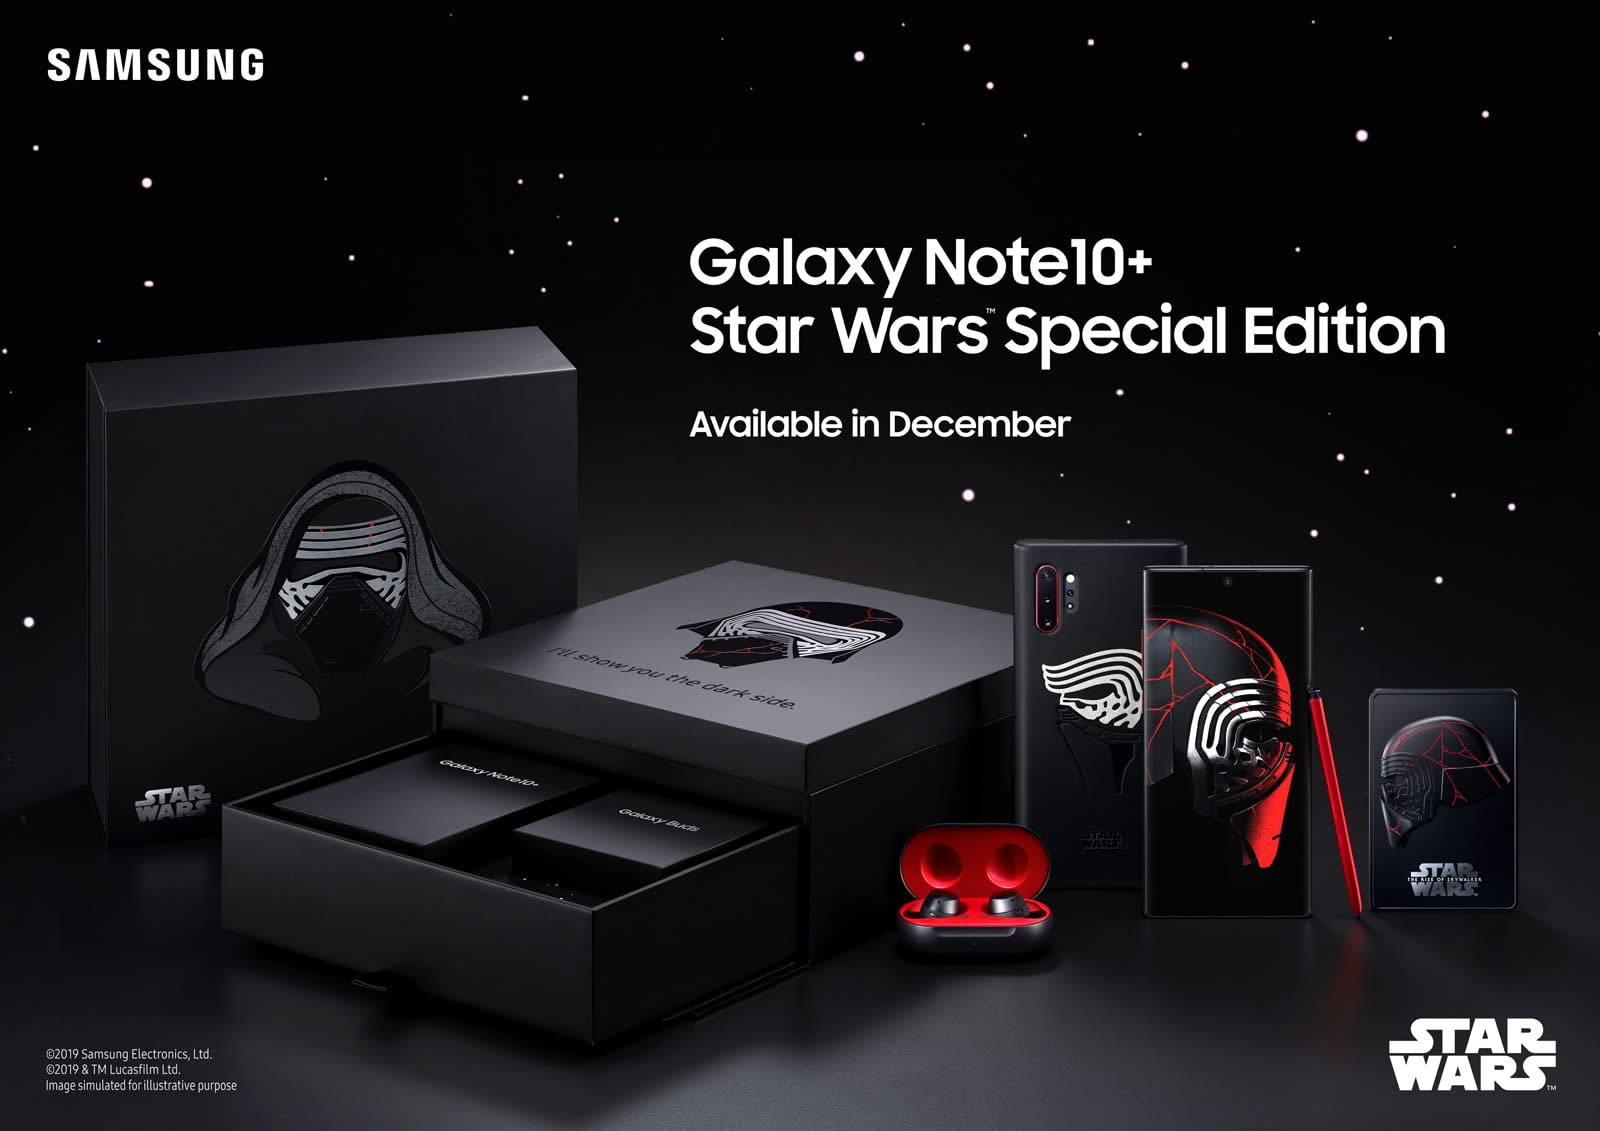 Samsung Galaxy Note 10+ 'Star Wars' Special Edition bundle